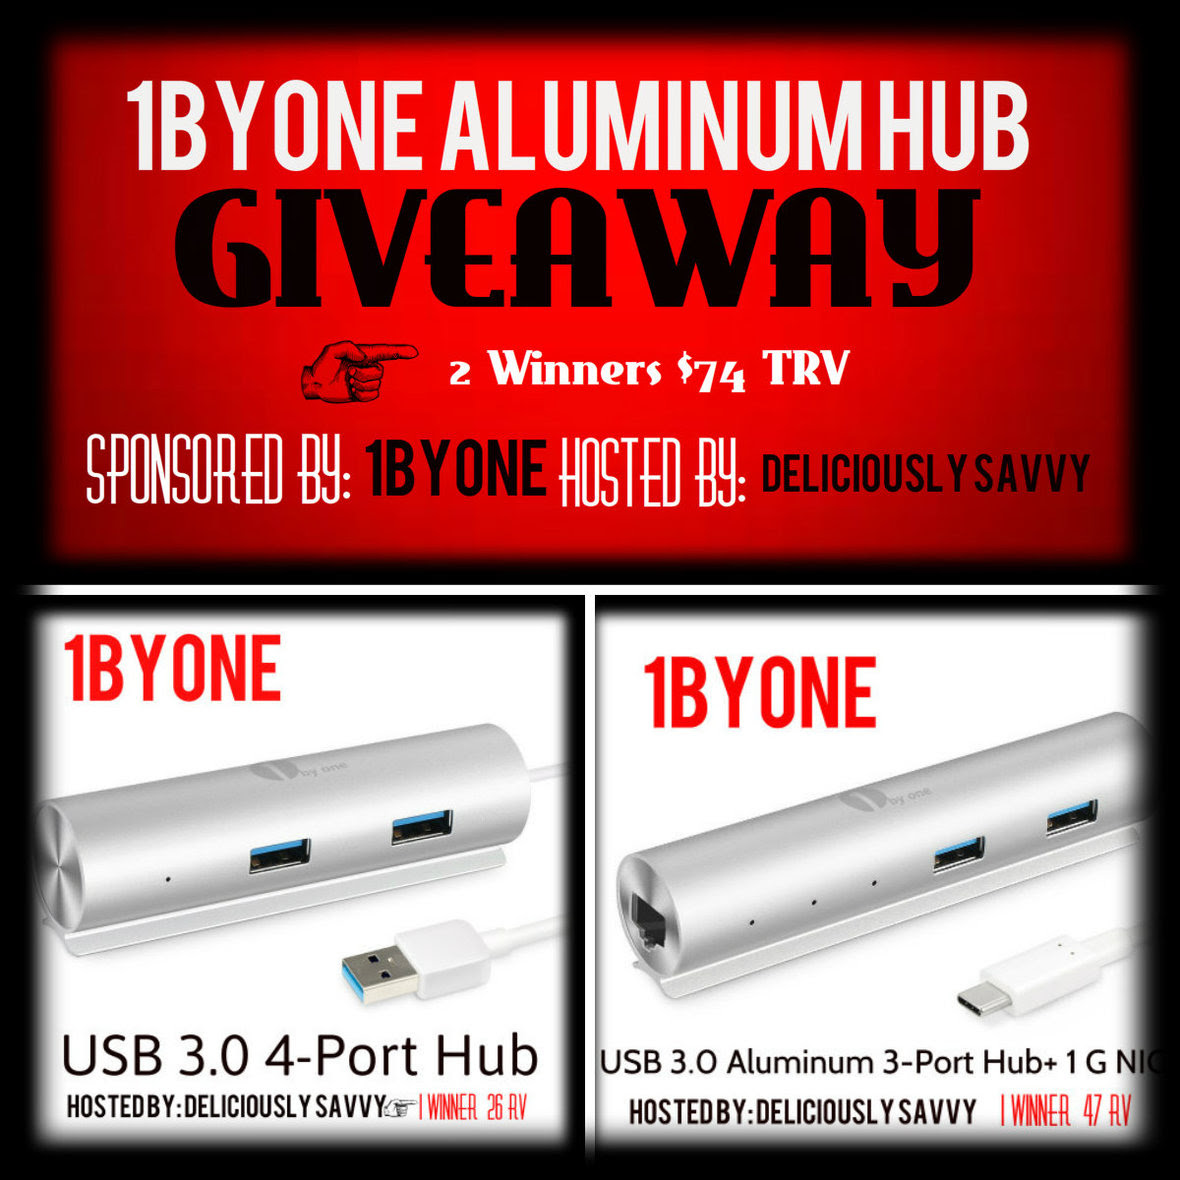 #1ByOne Aluminum Hub #Giveaway Ends 4/29